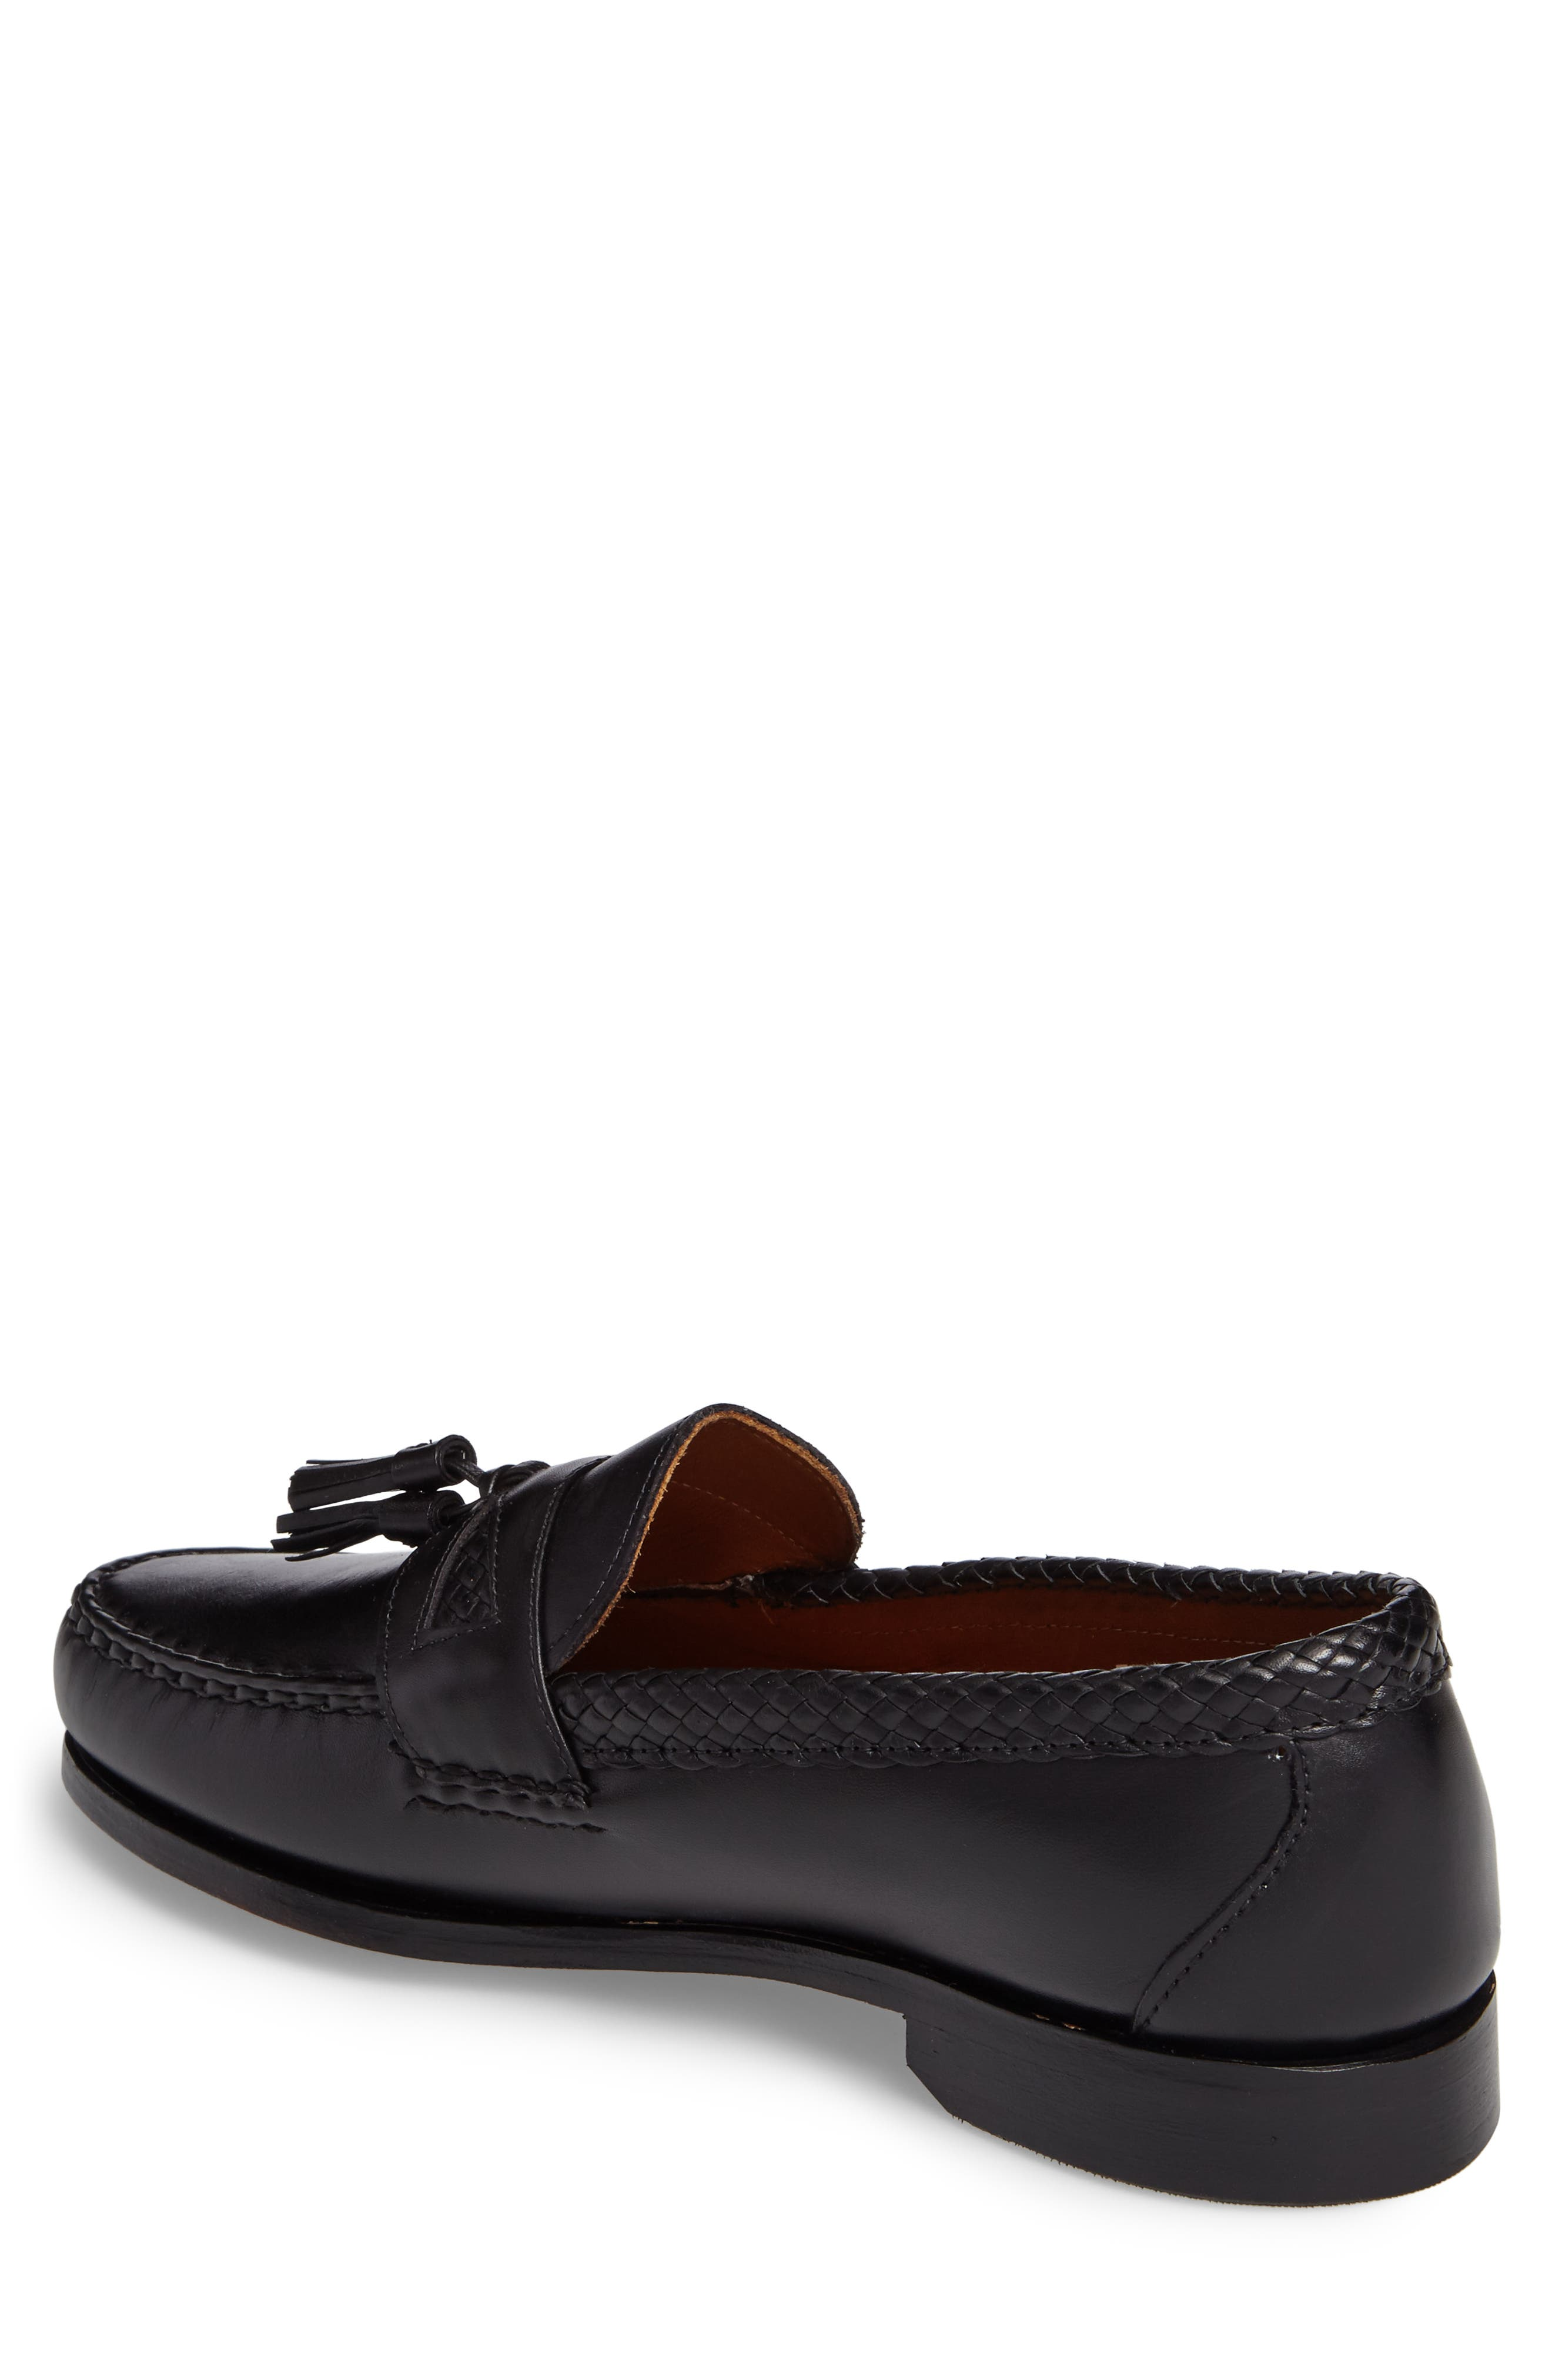 'Maxfield' Loafer,                             Alternate thumbnail 2, color,                             BLACK